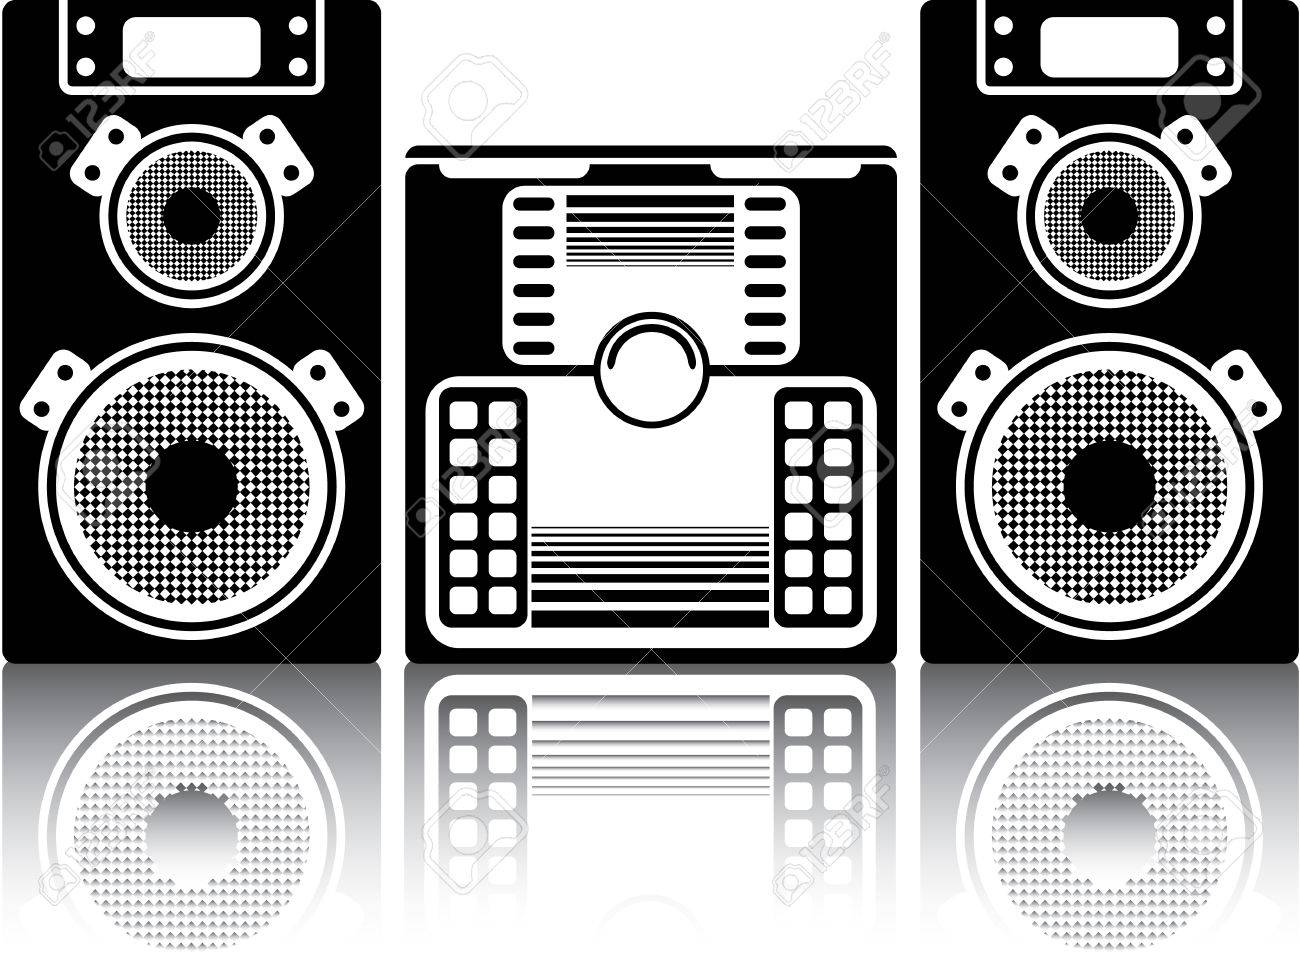 Boombox Stereo System Vector Image Clip Art Royalty Free Cliparts Vectors And Stock Illustration Image 68044058